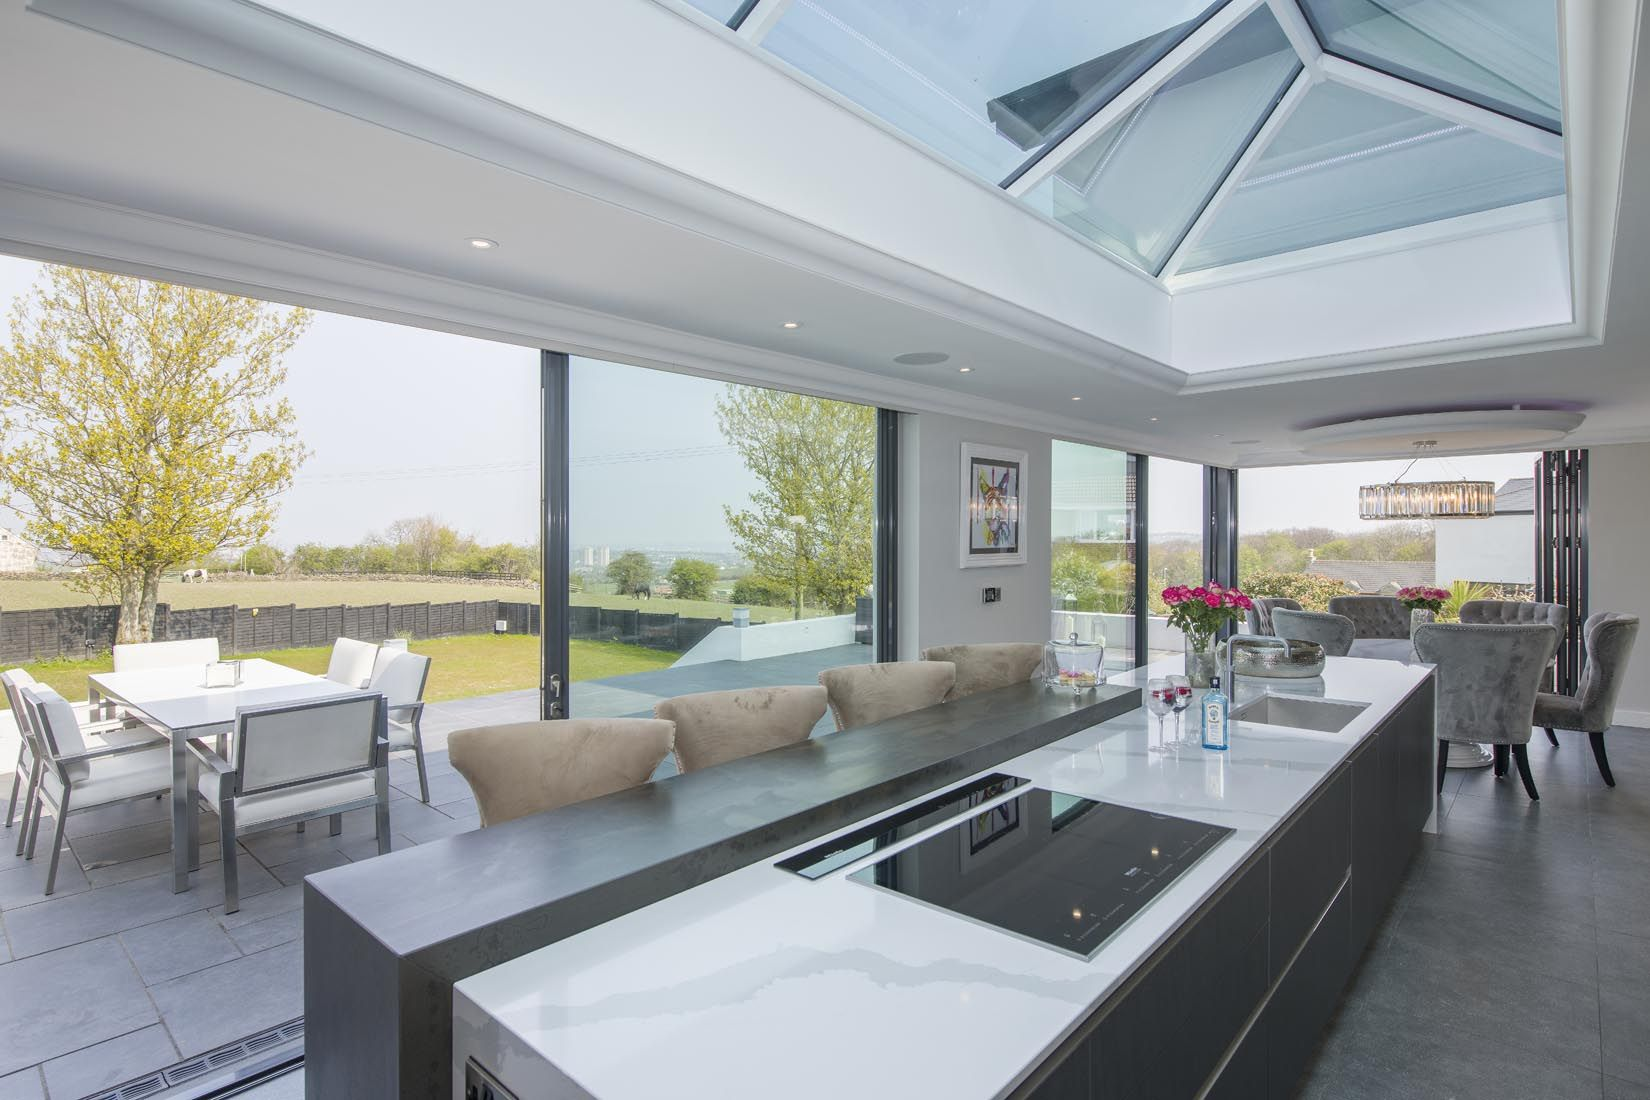 Create A Stunning Focal Point With An Oversized Island For Maximum Effect Design Your Island So It Sits Directly Kitchen Room Design Roof Lantern House Design